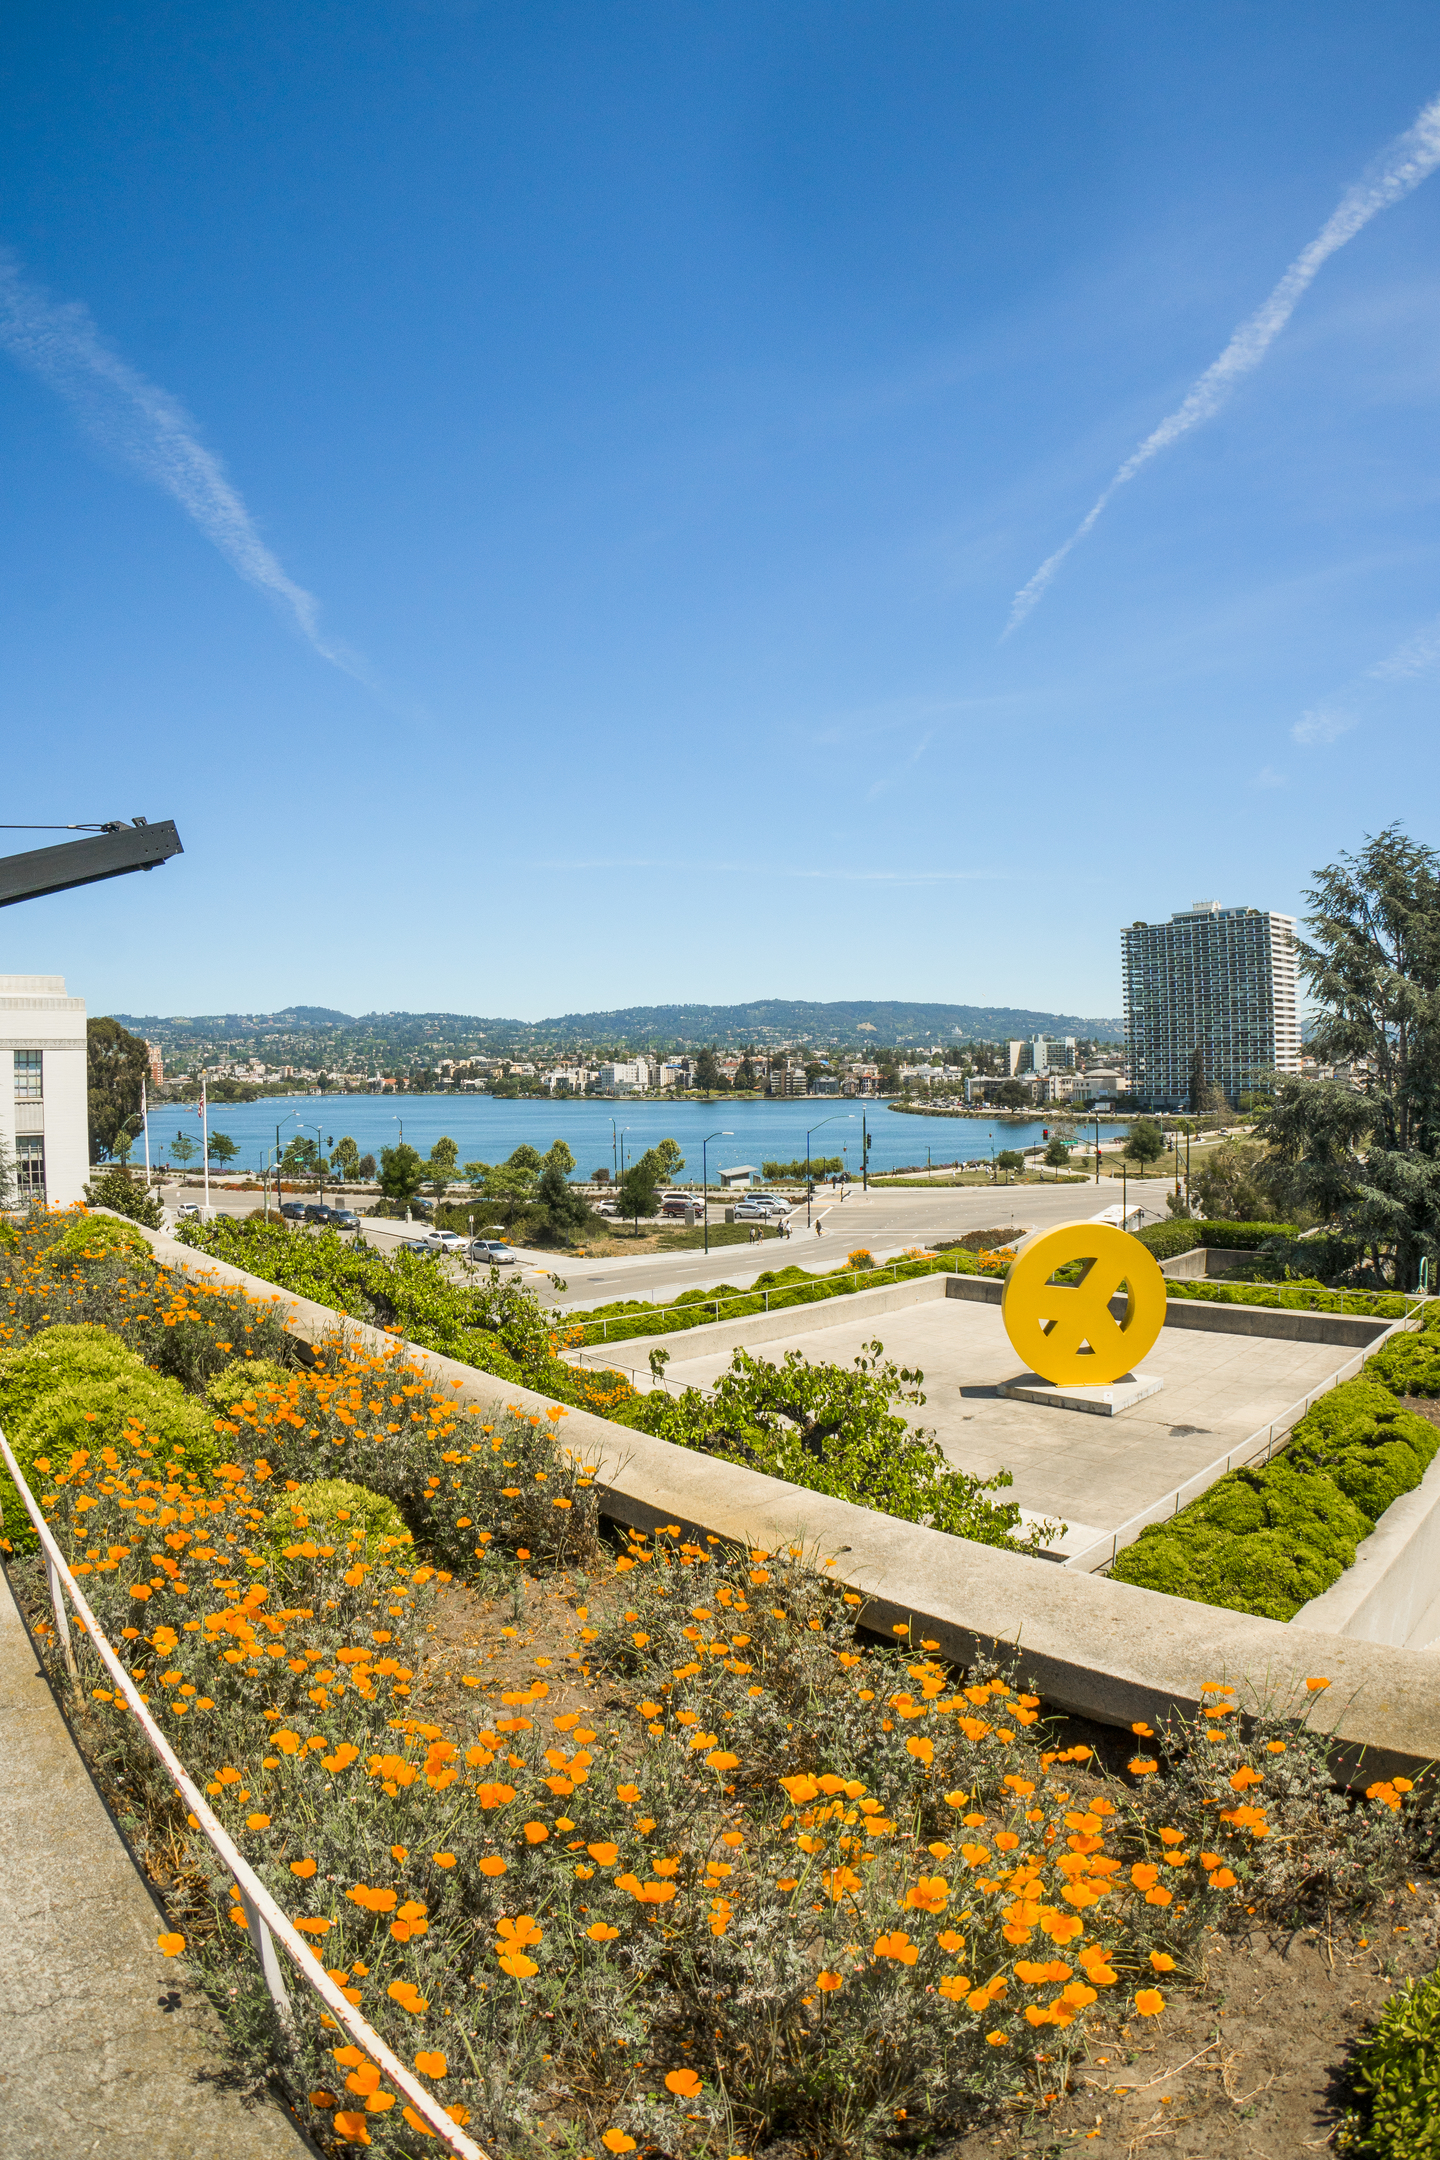 Visiting Lake Merritt is one of many things to do in Oakland CA.